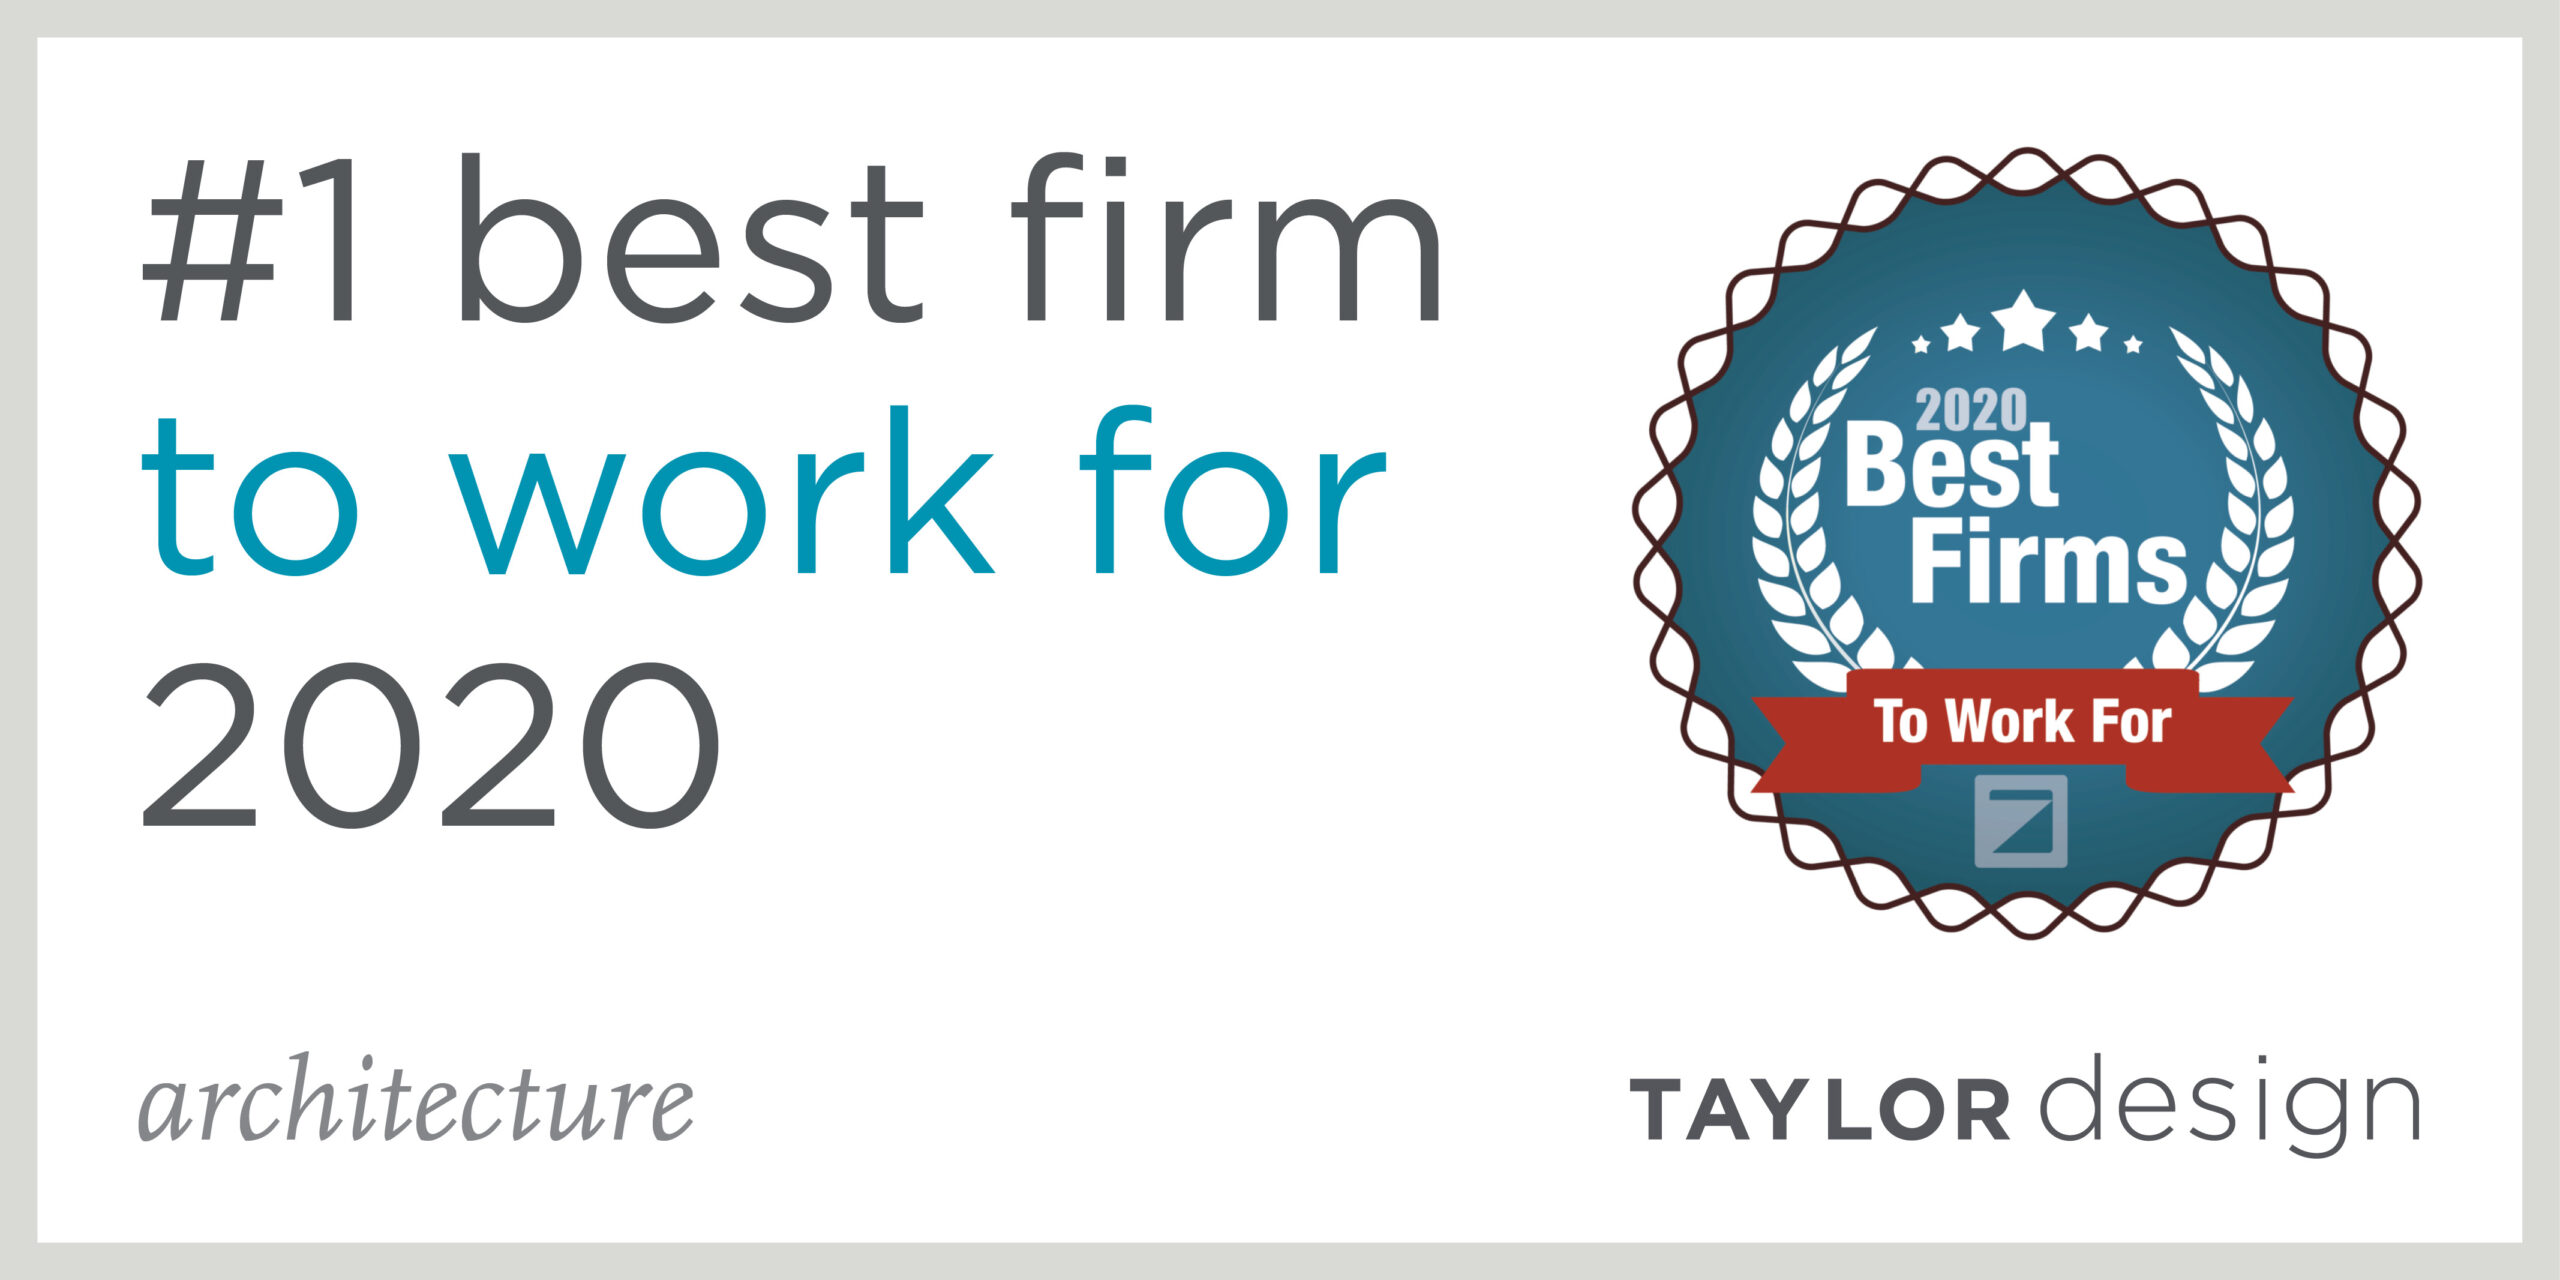 Best Firms 2020 - Taylor Design